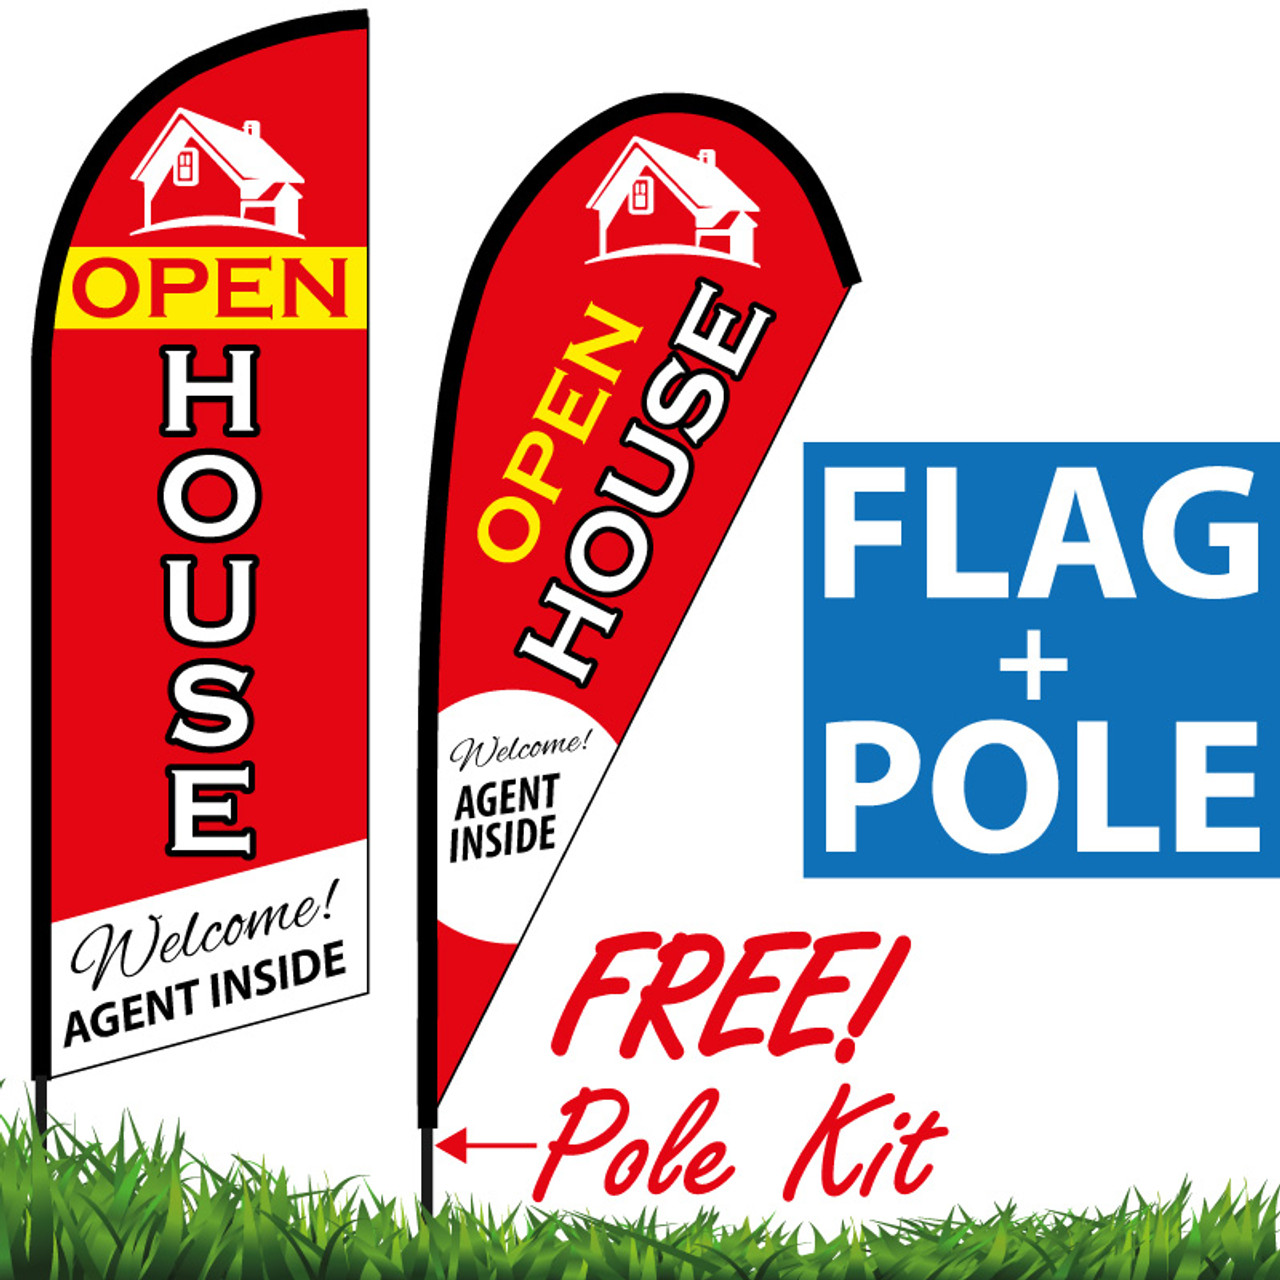 OPEN HOUSE TODAY WELCOME COME IN Advertising Vinyl Banner Flag Sign Many Sizes